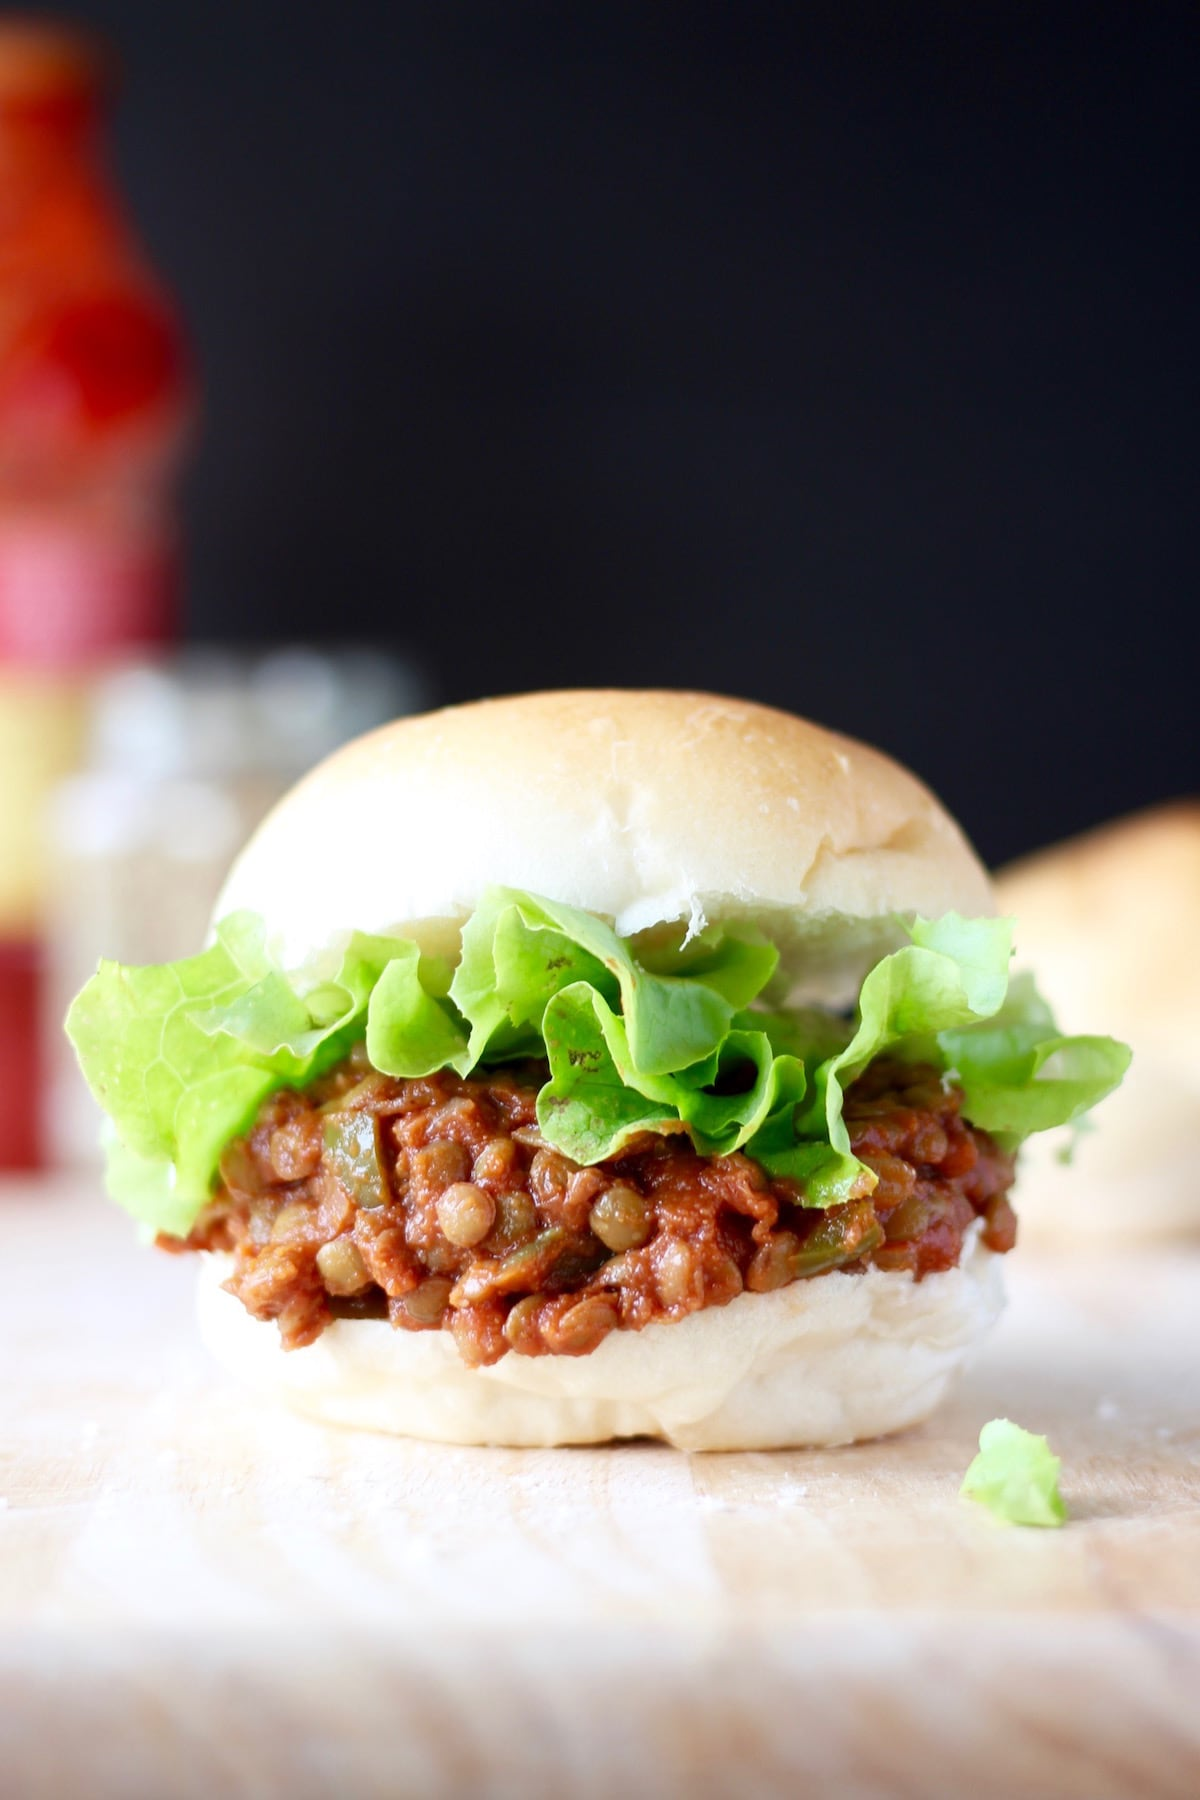 Lentil sloppy joes piled high on a hamburger bun with lettuce